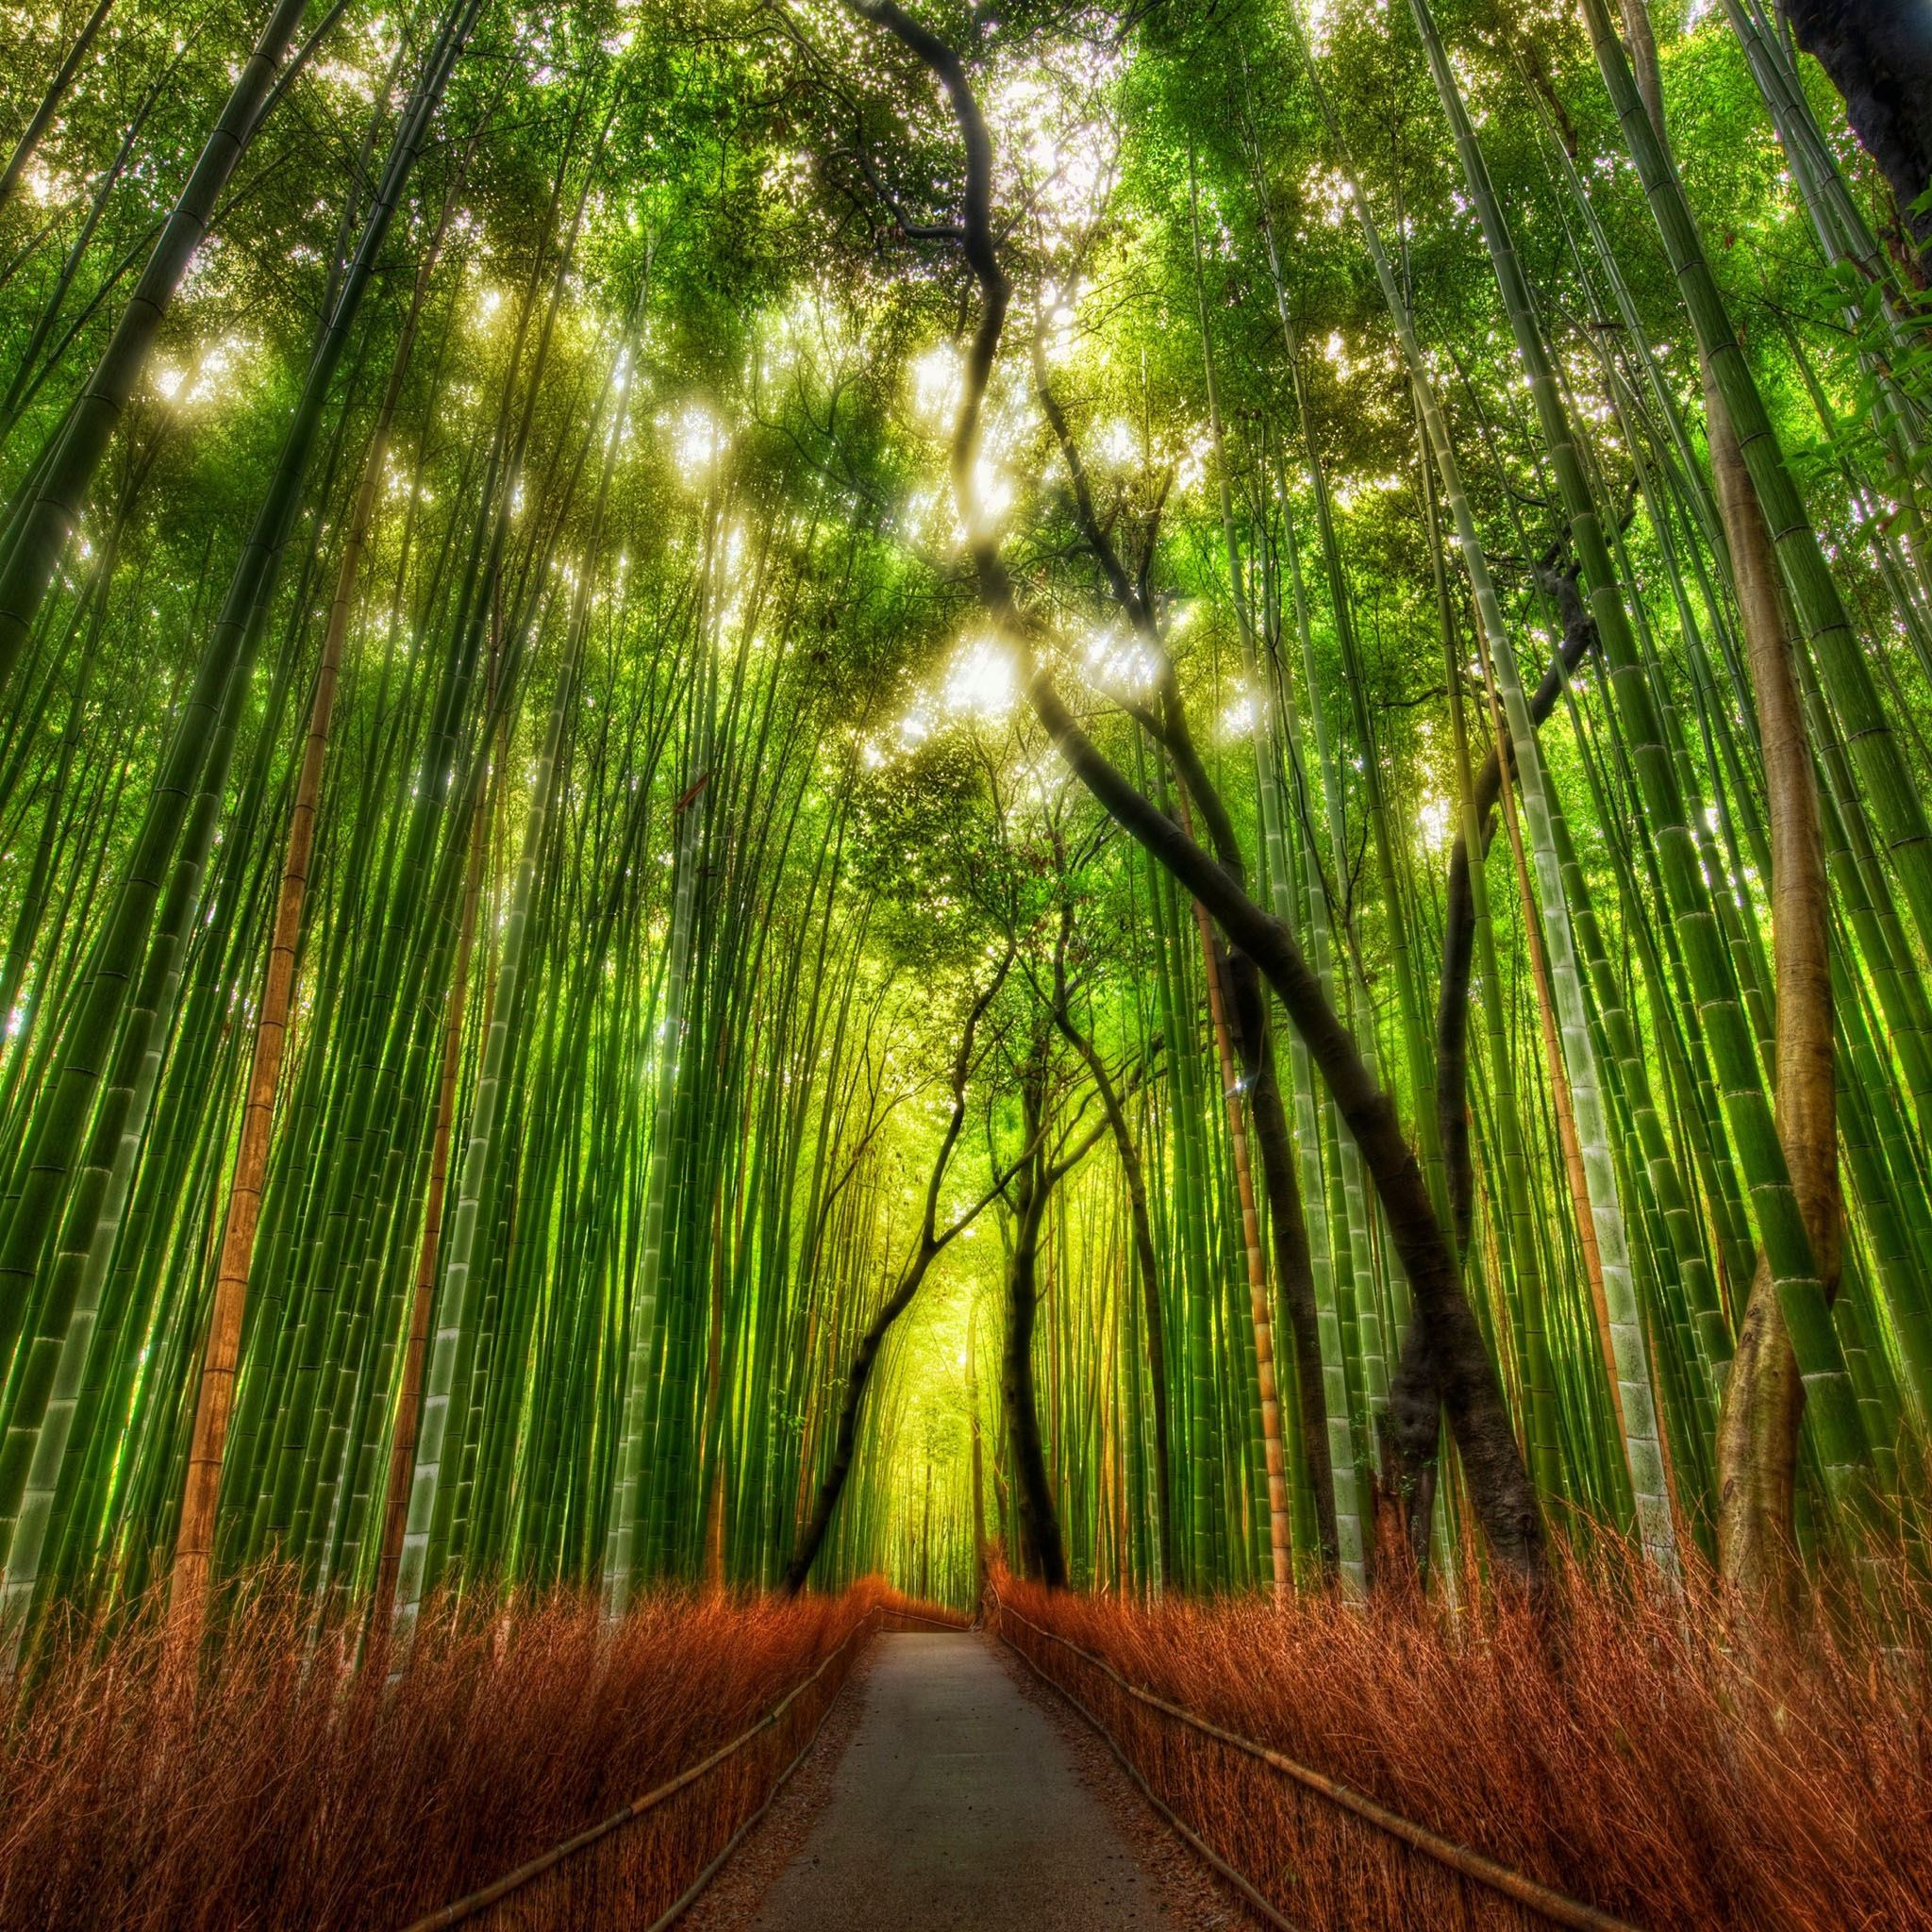 Nature Bamboo Woodland Road iPad Air wallpaper